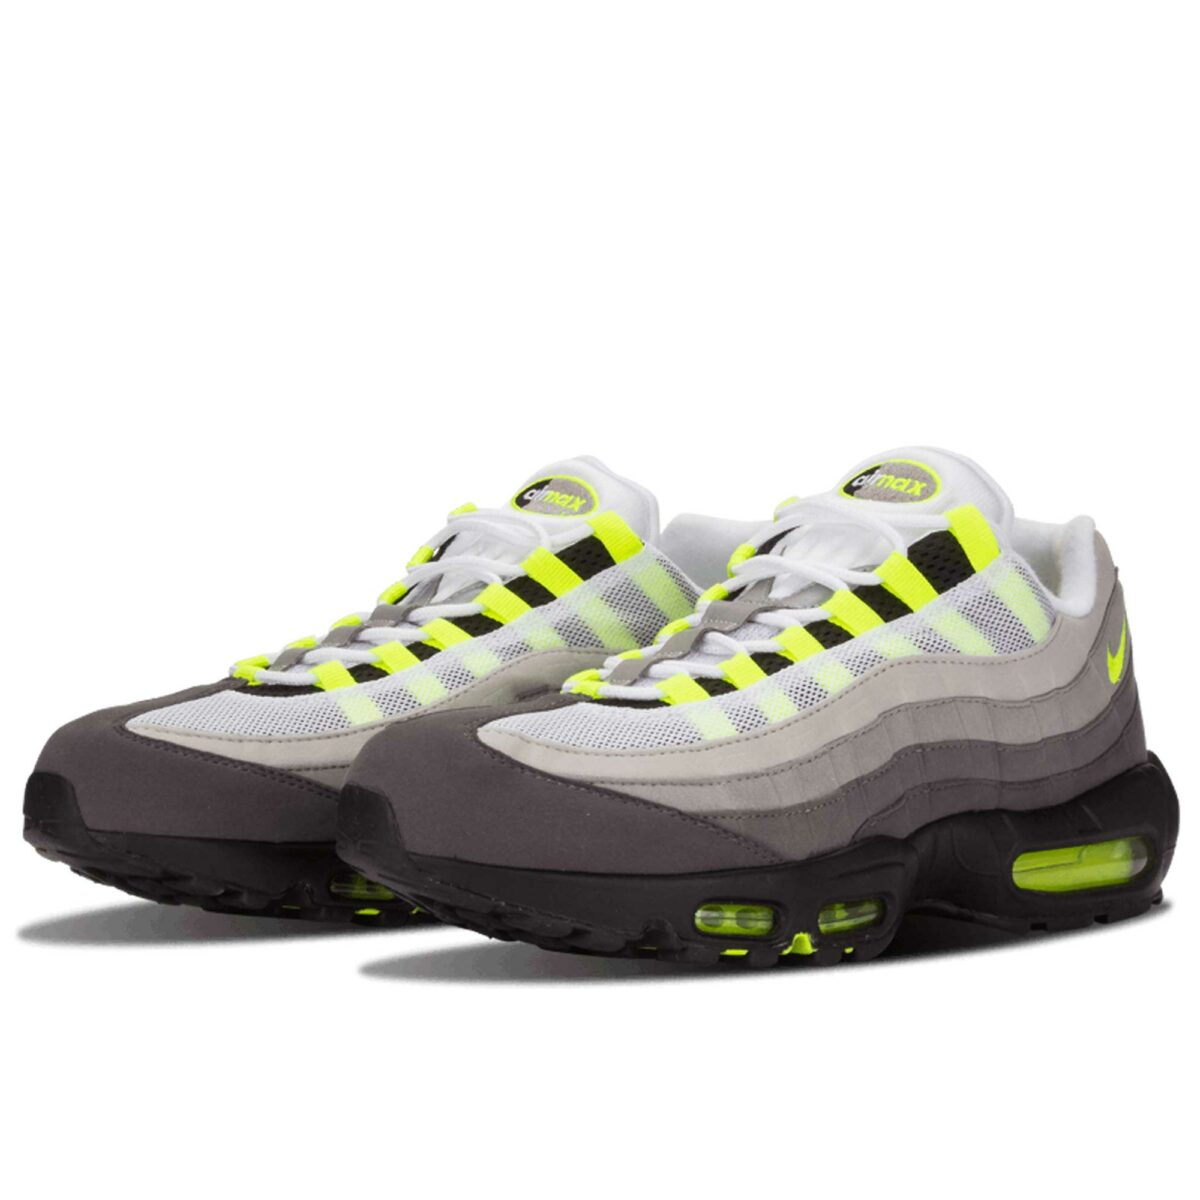 nike air max 95 og black grey volt 554970_071 купить